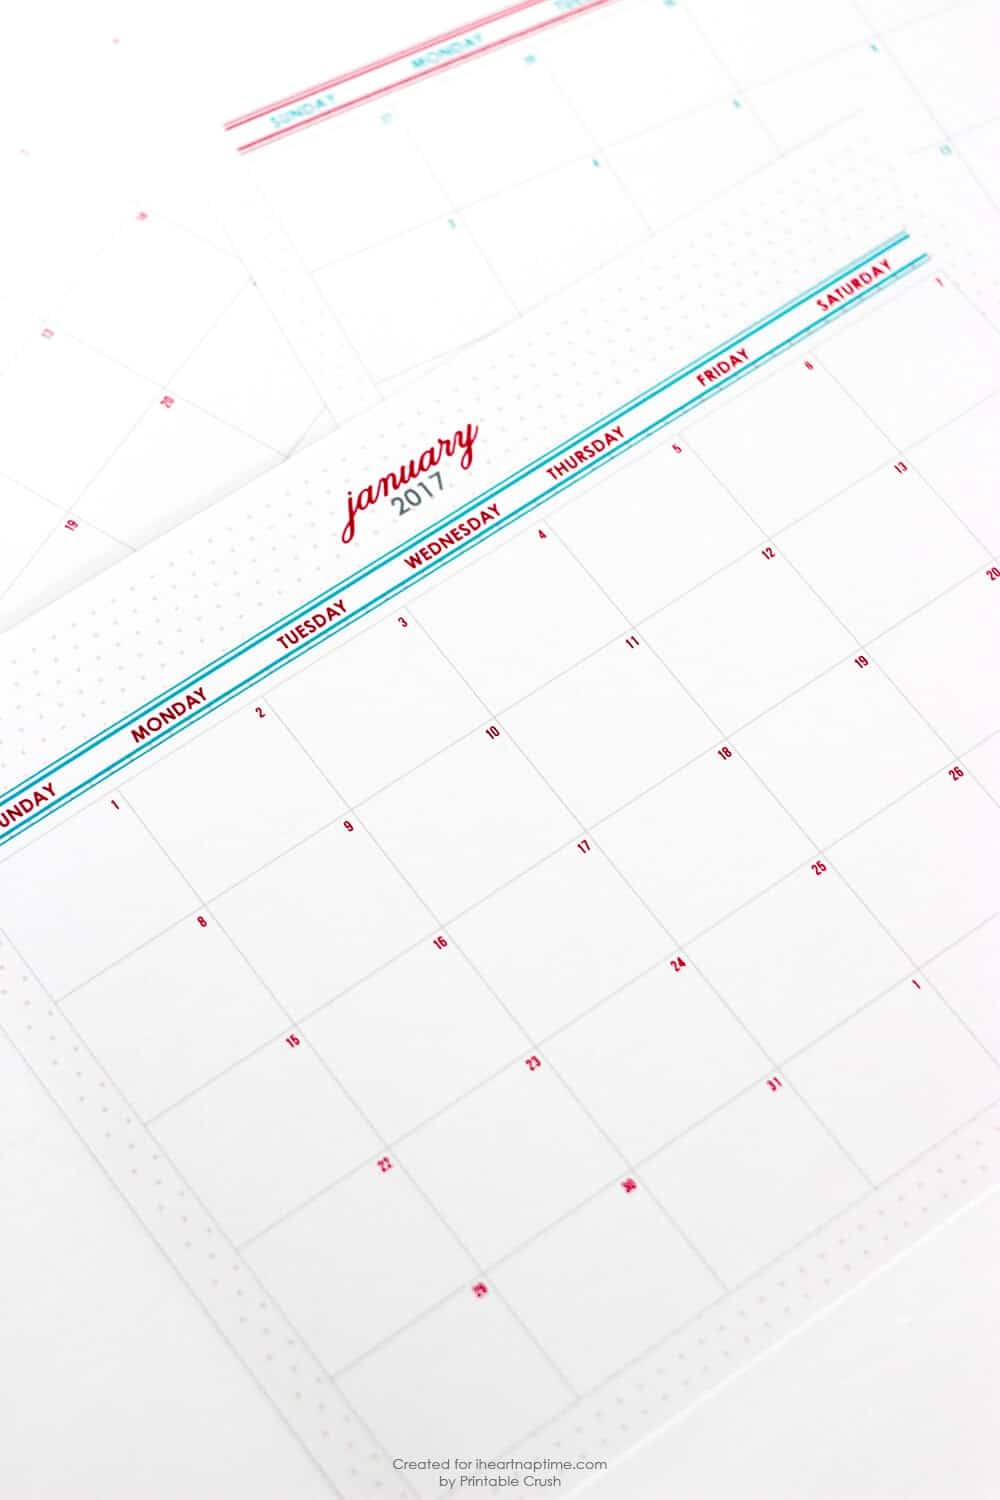 FREE Printable 2017 Monthly Calendar... download this FREE Printable 2017 Monthly Calendar to stay organized this year! It comes in two colors with a beautiful design.